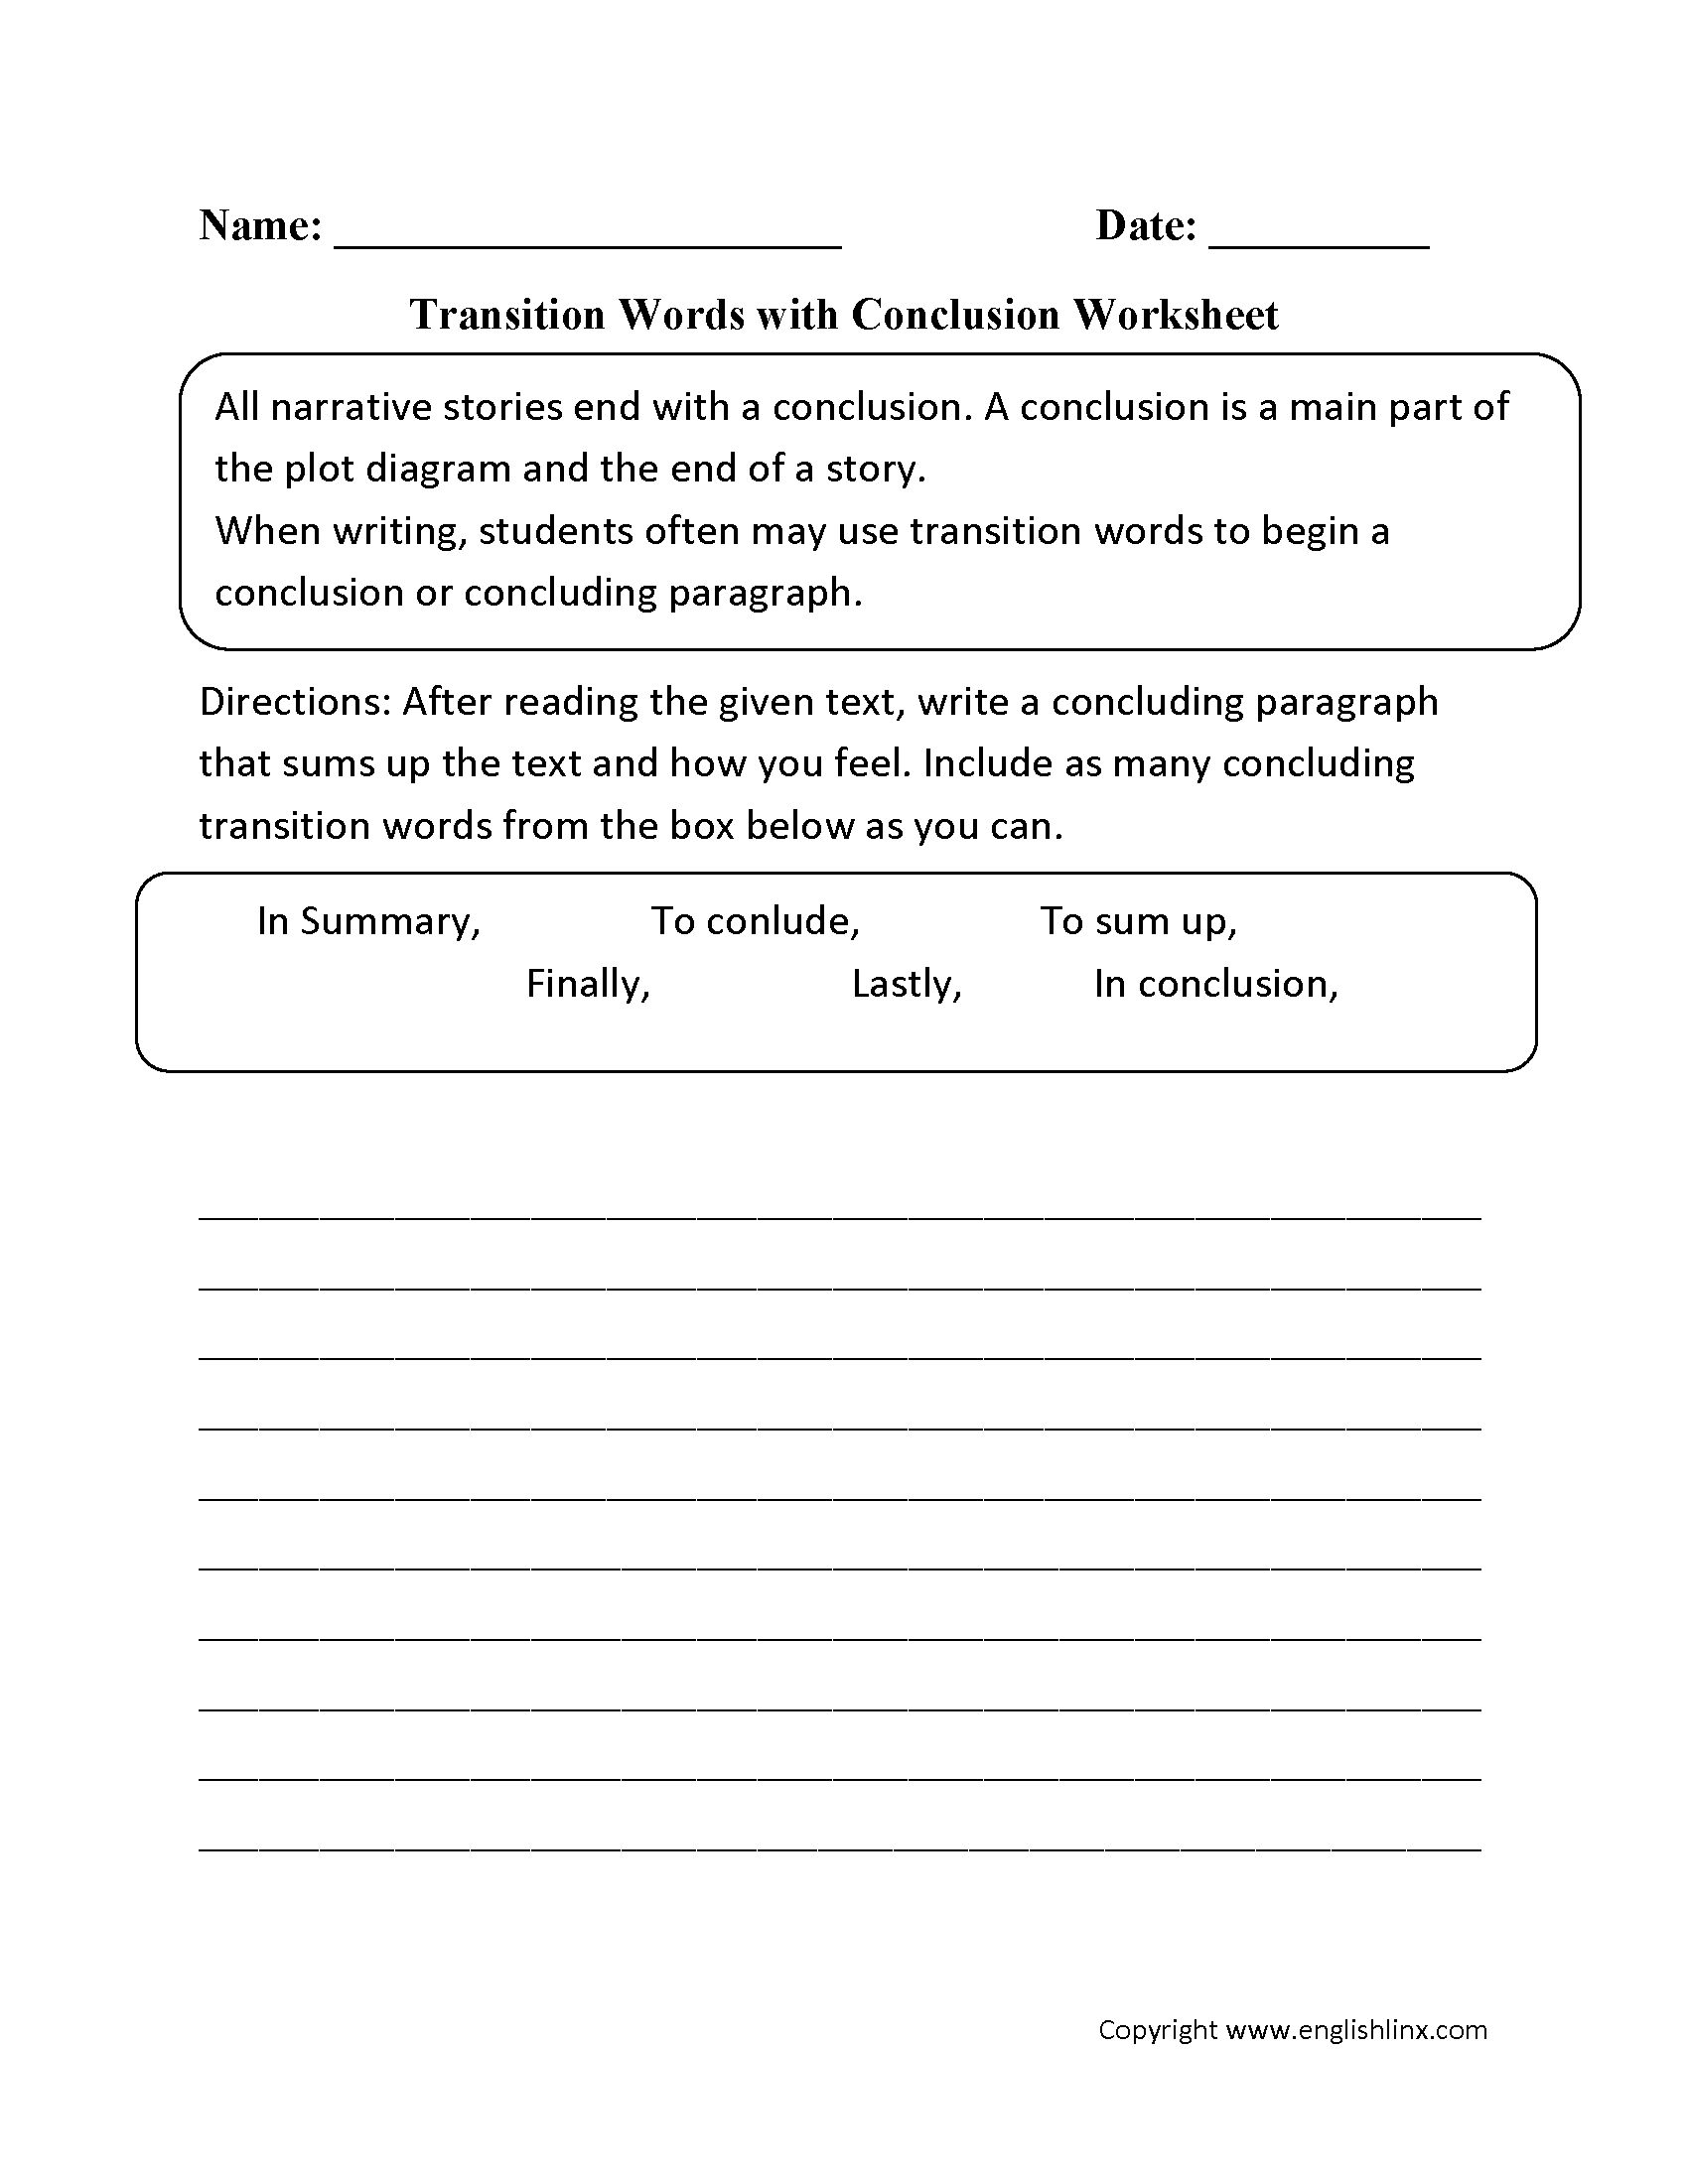 reading worksheets drawing conclusions worksheets drawing conclusions worksheets